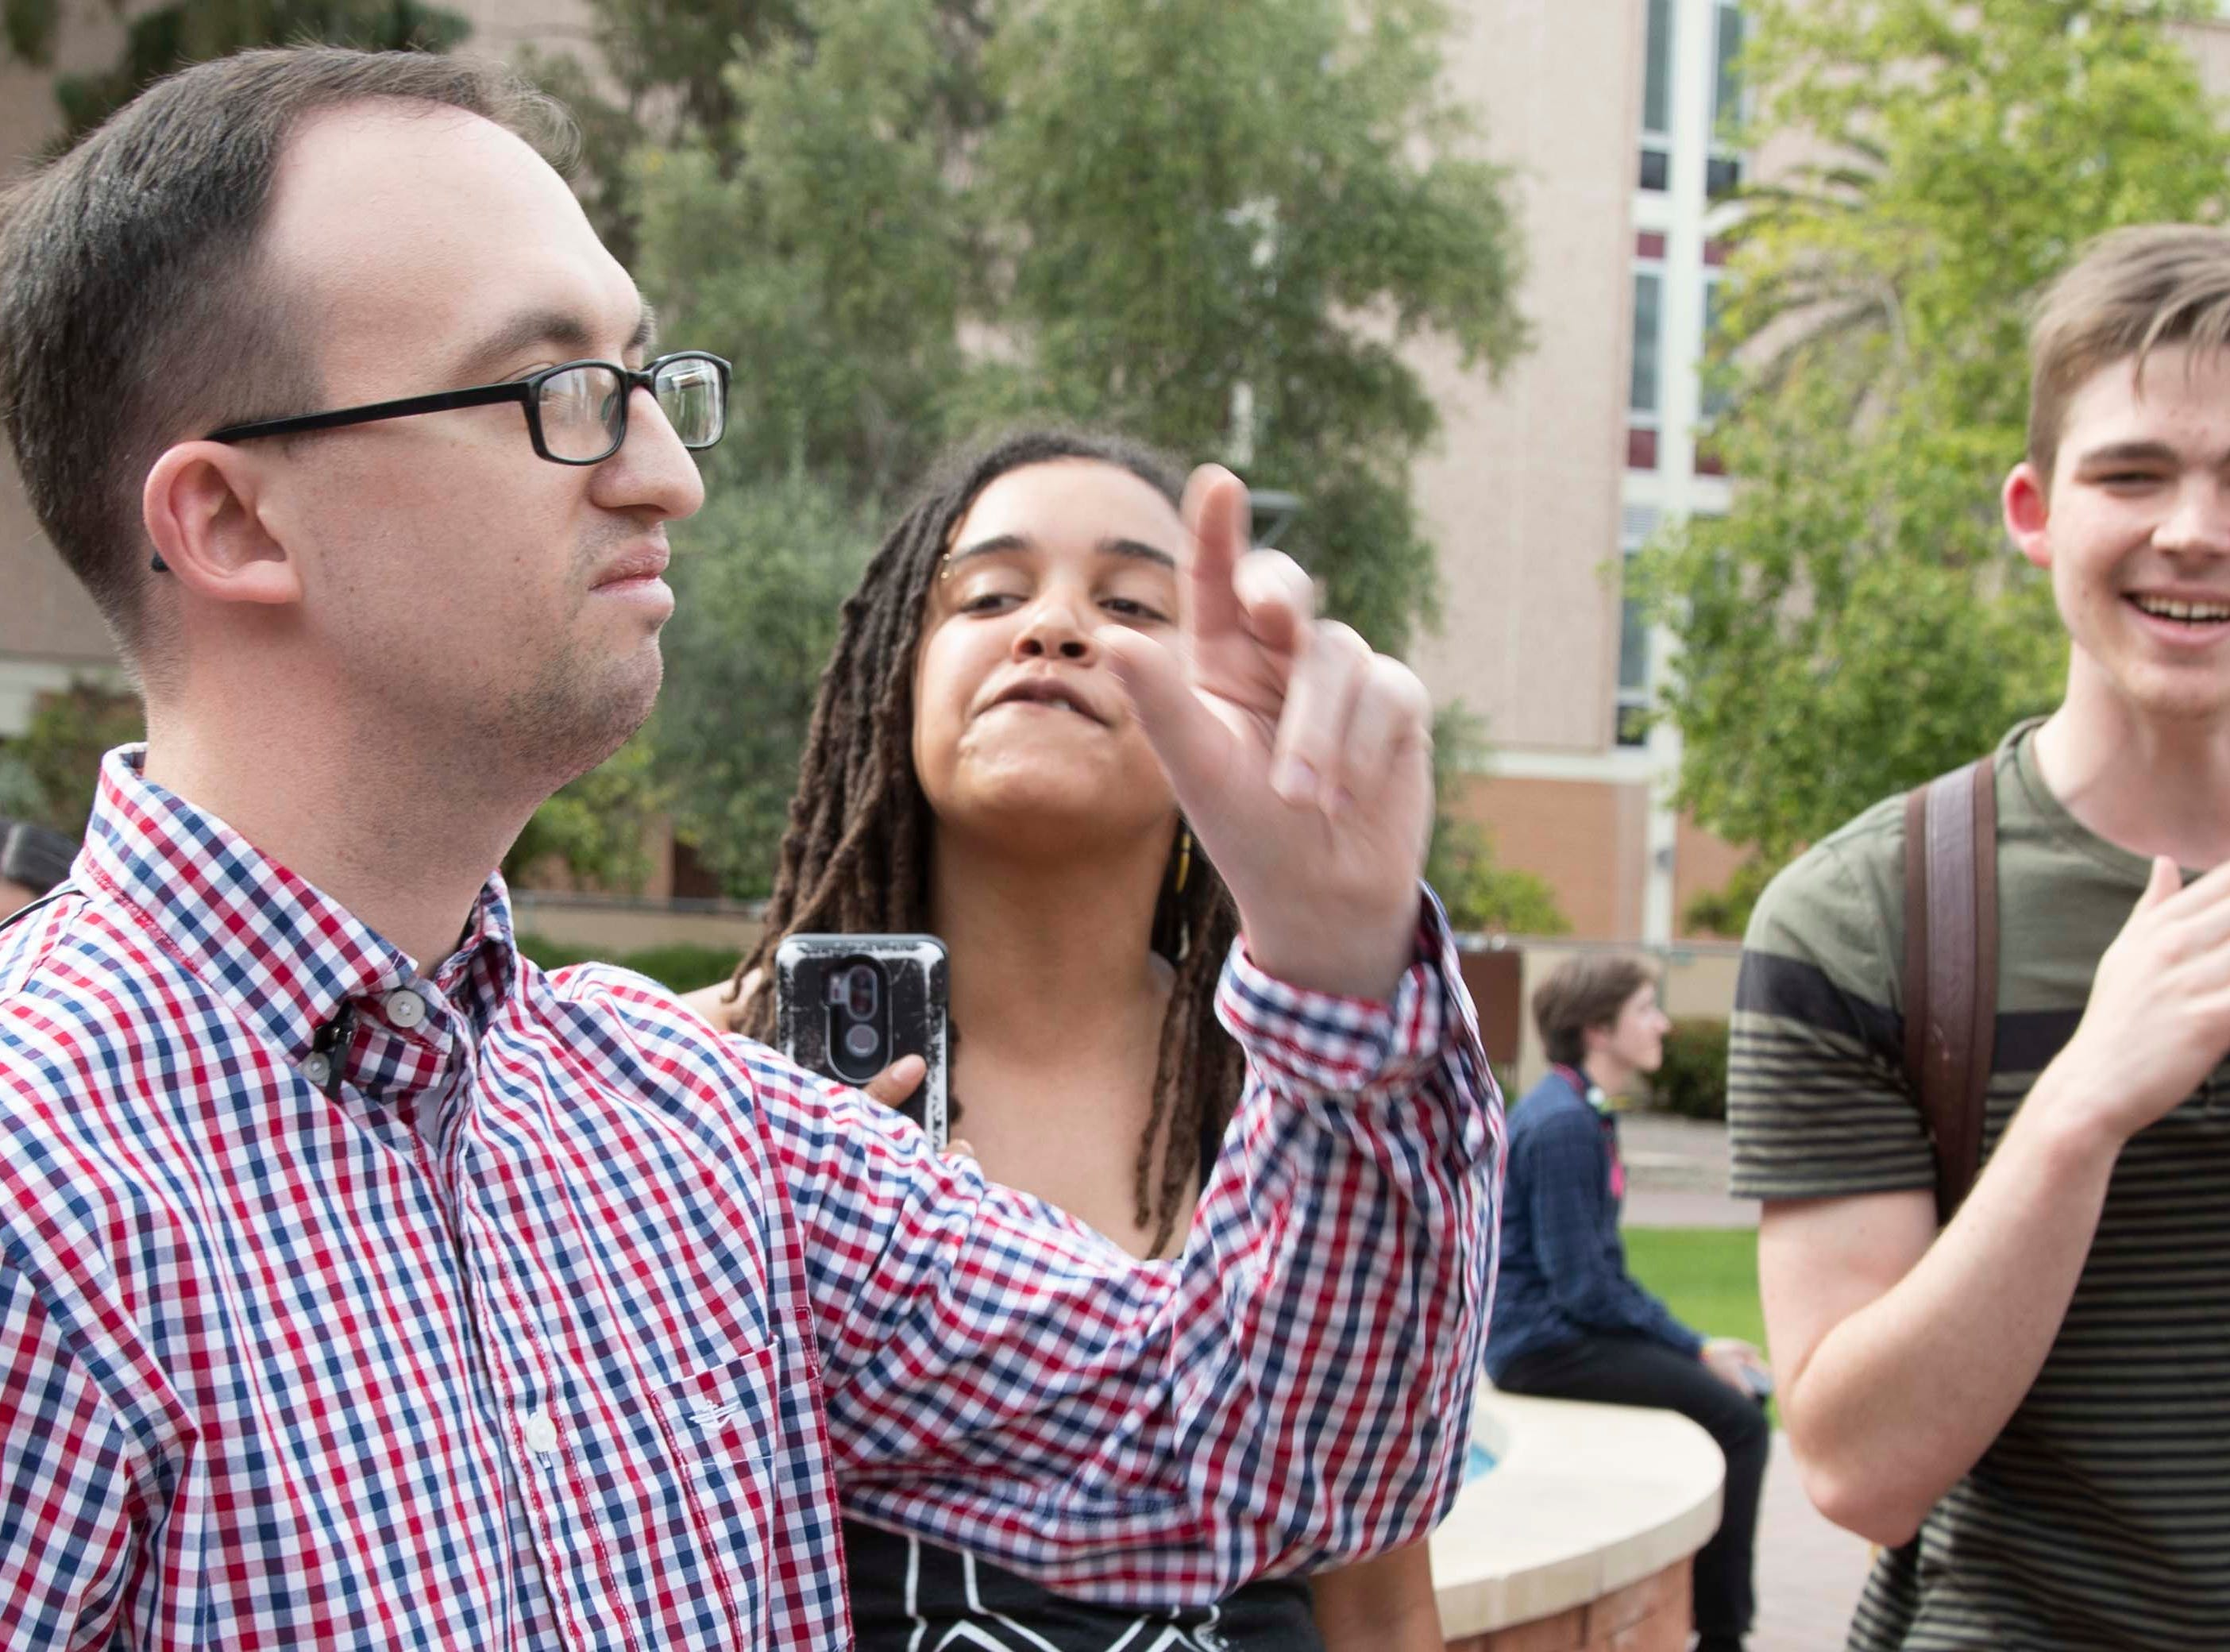 College Republicans United President Mark Northway (left) publicly apologizes to student protesters in front of Old Main at ASU on March 26, 2019.